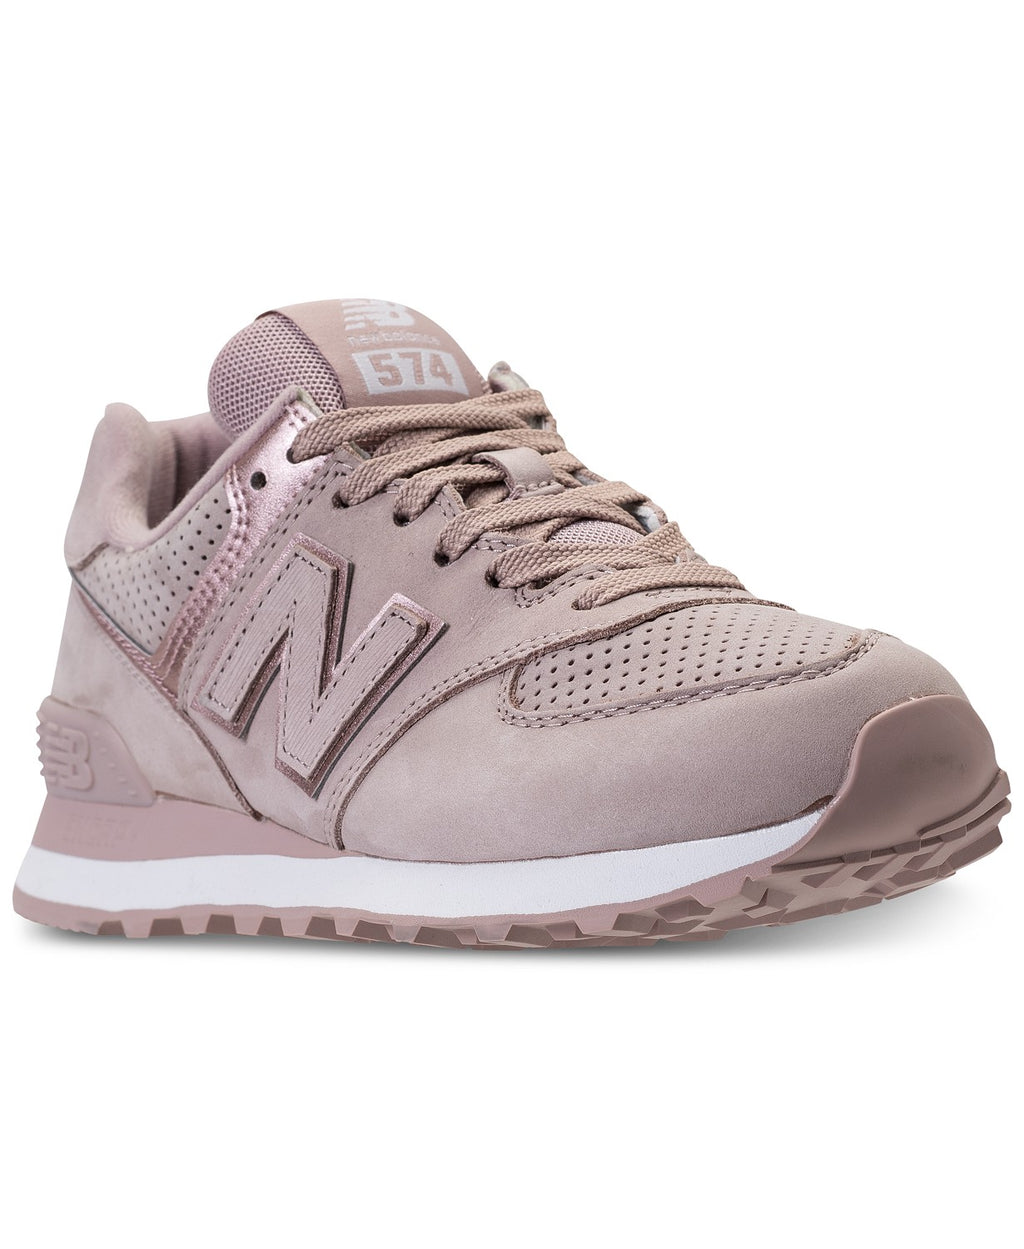 New Balance Women's 574 Rose Gold Sneakers